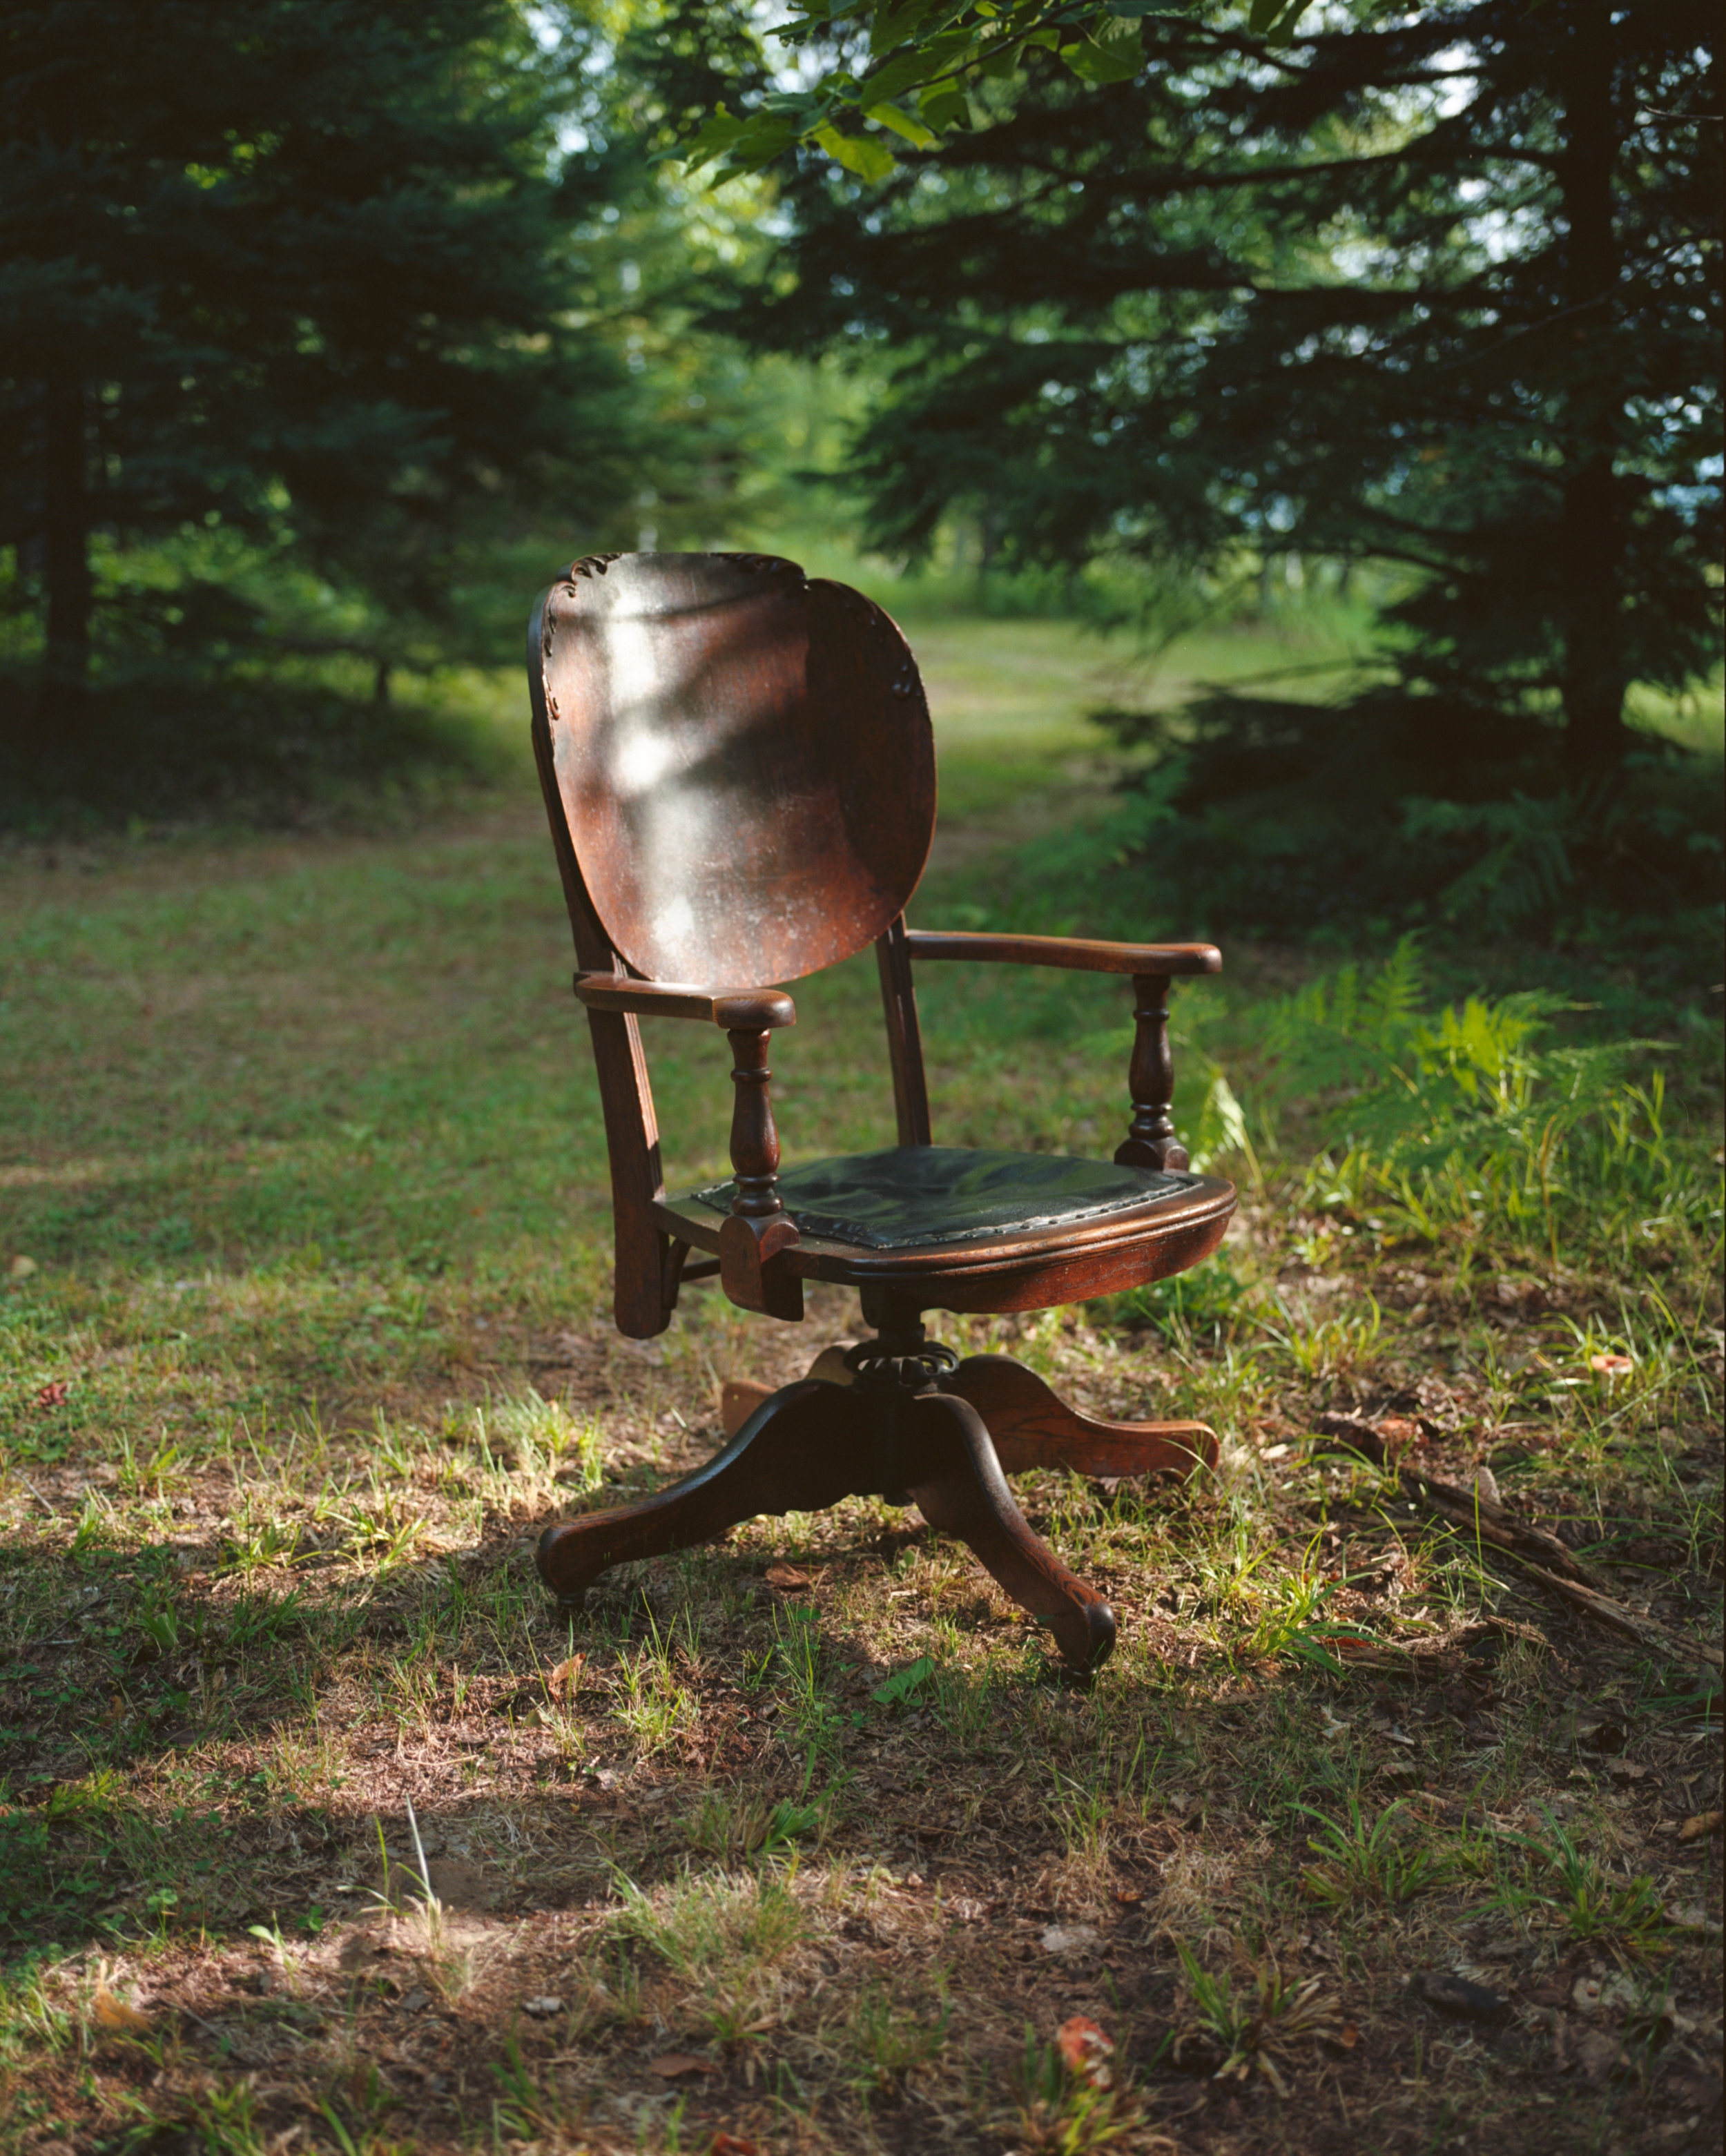 My great-great-great-grandfather Abe Lincoln Biglow's office chair